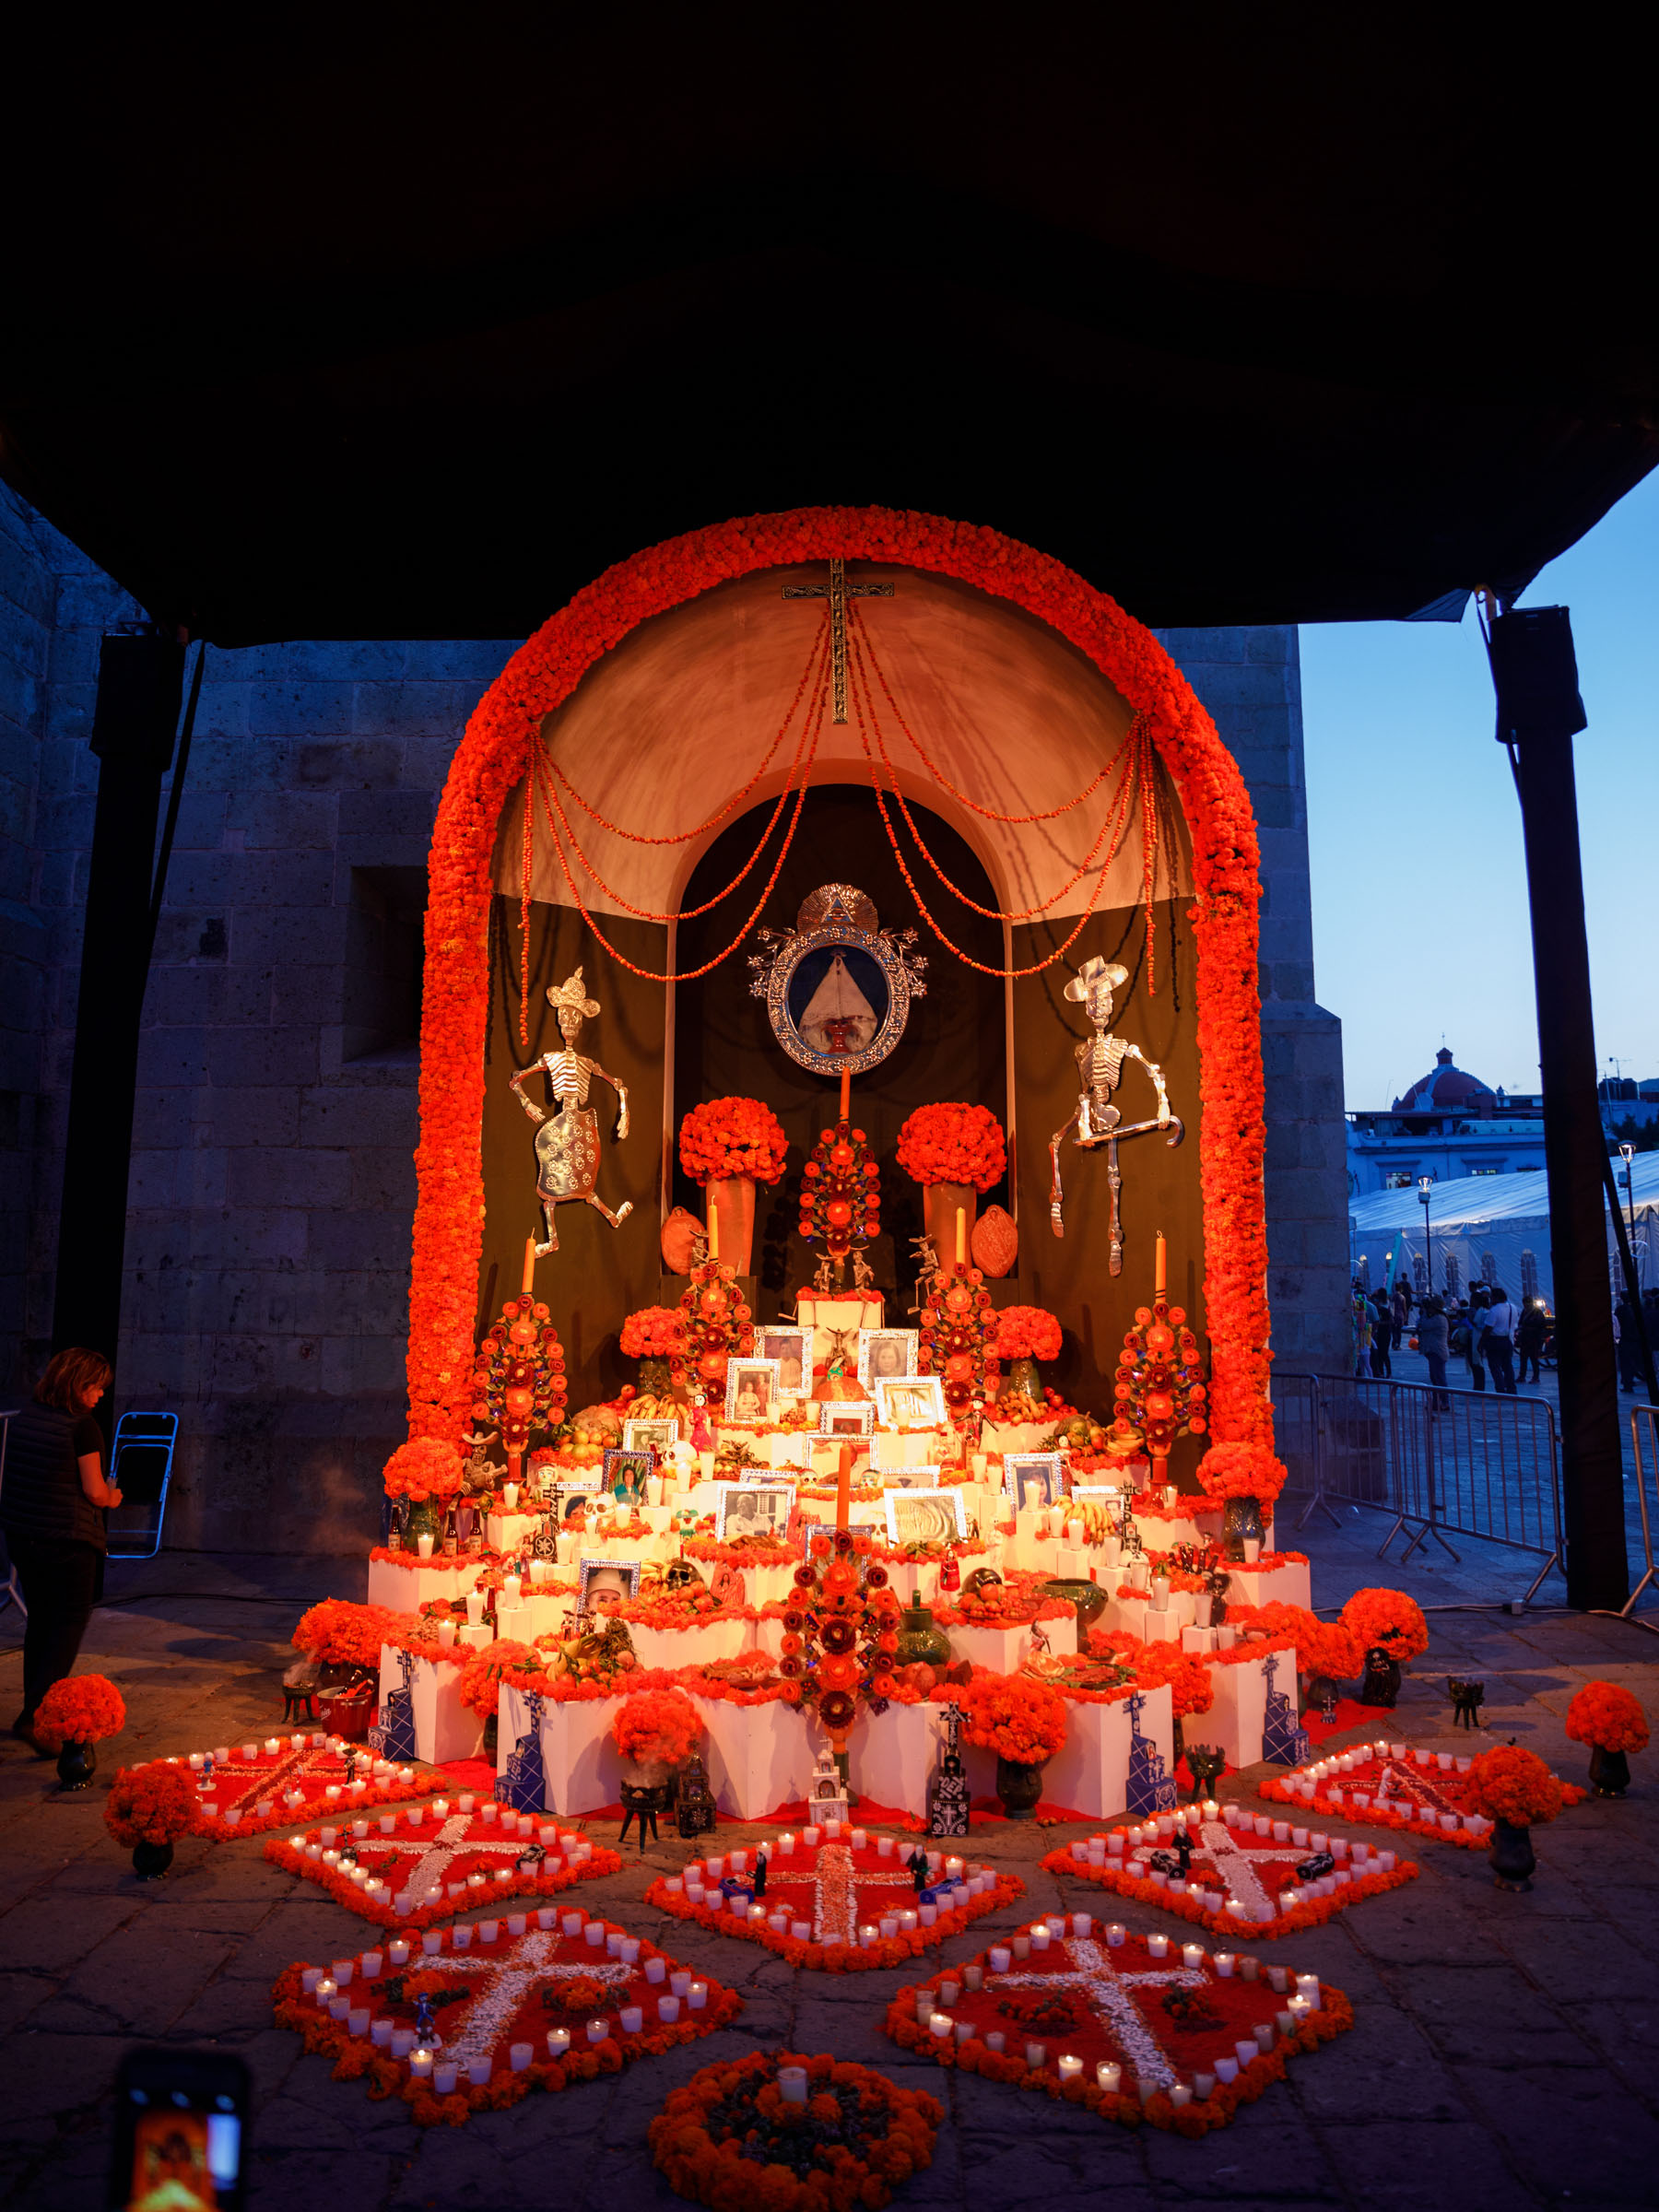 Fun Things to Experience in Mexico for Day of the Dead - Xoxocotlán Cemetery